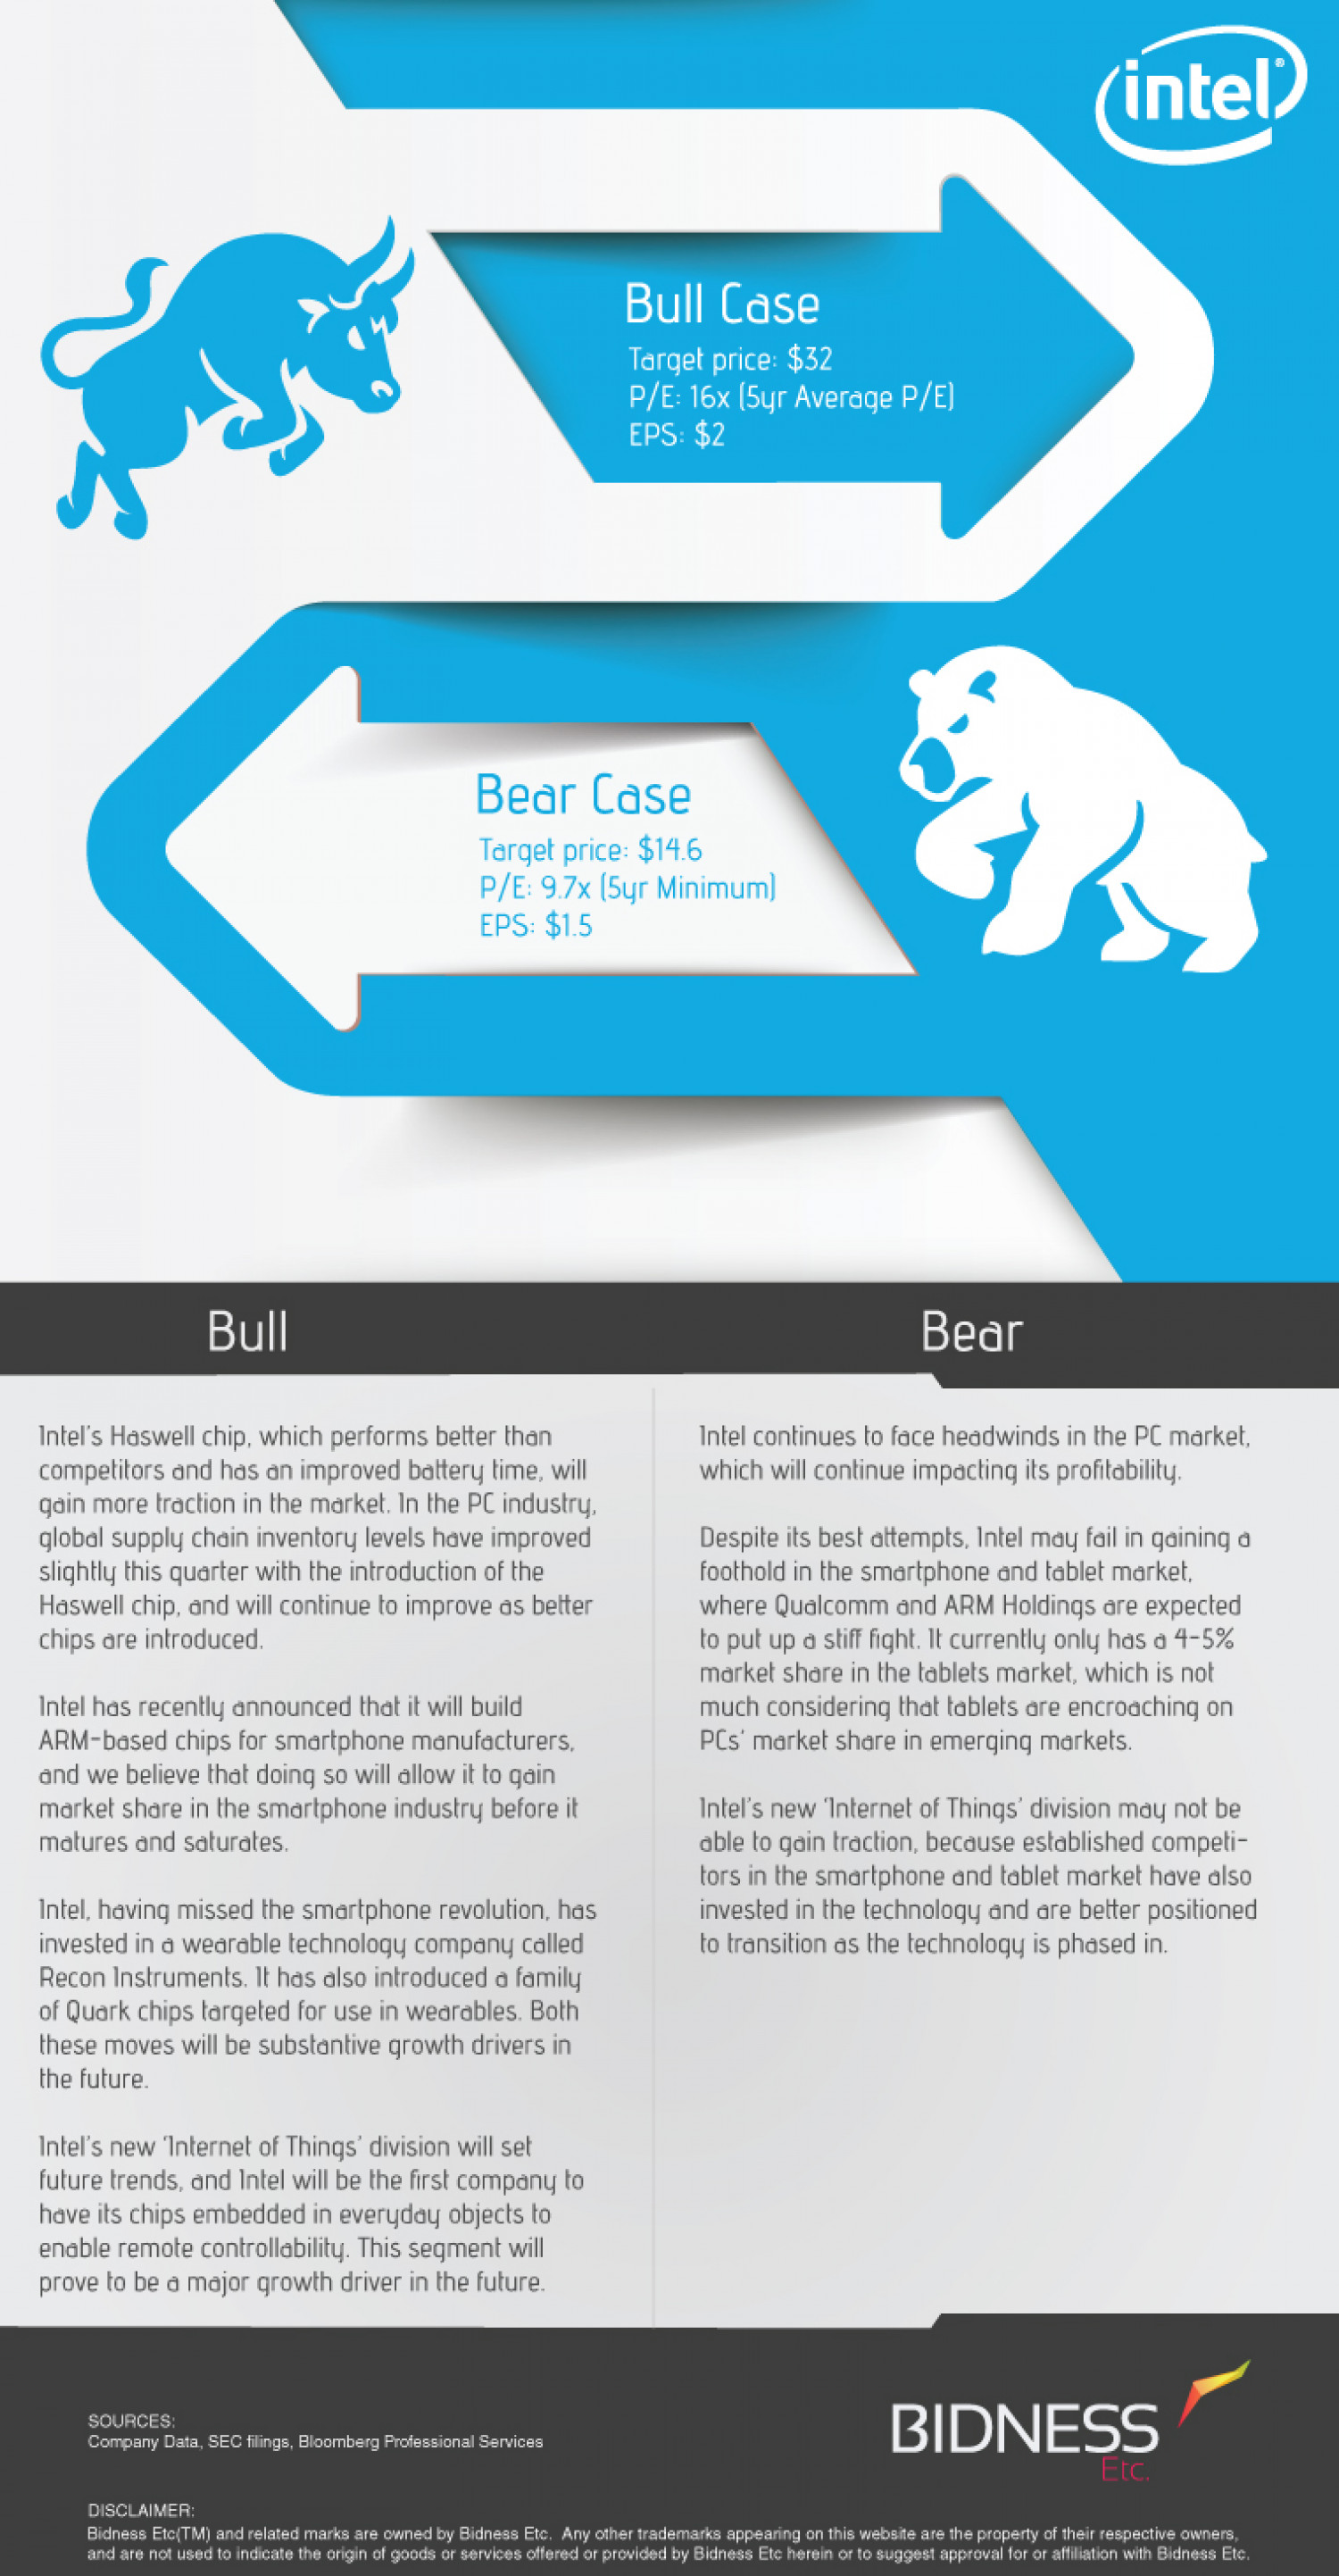 Intel (INTC) Bull Bear Case Infographic